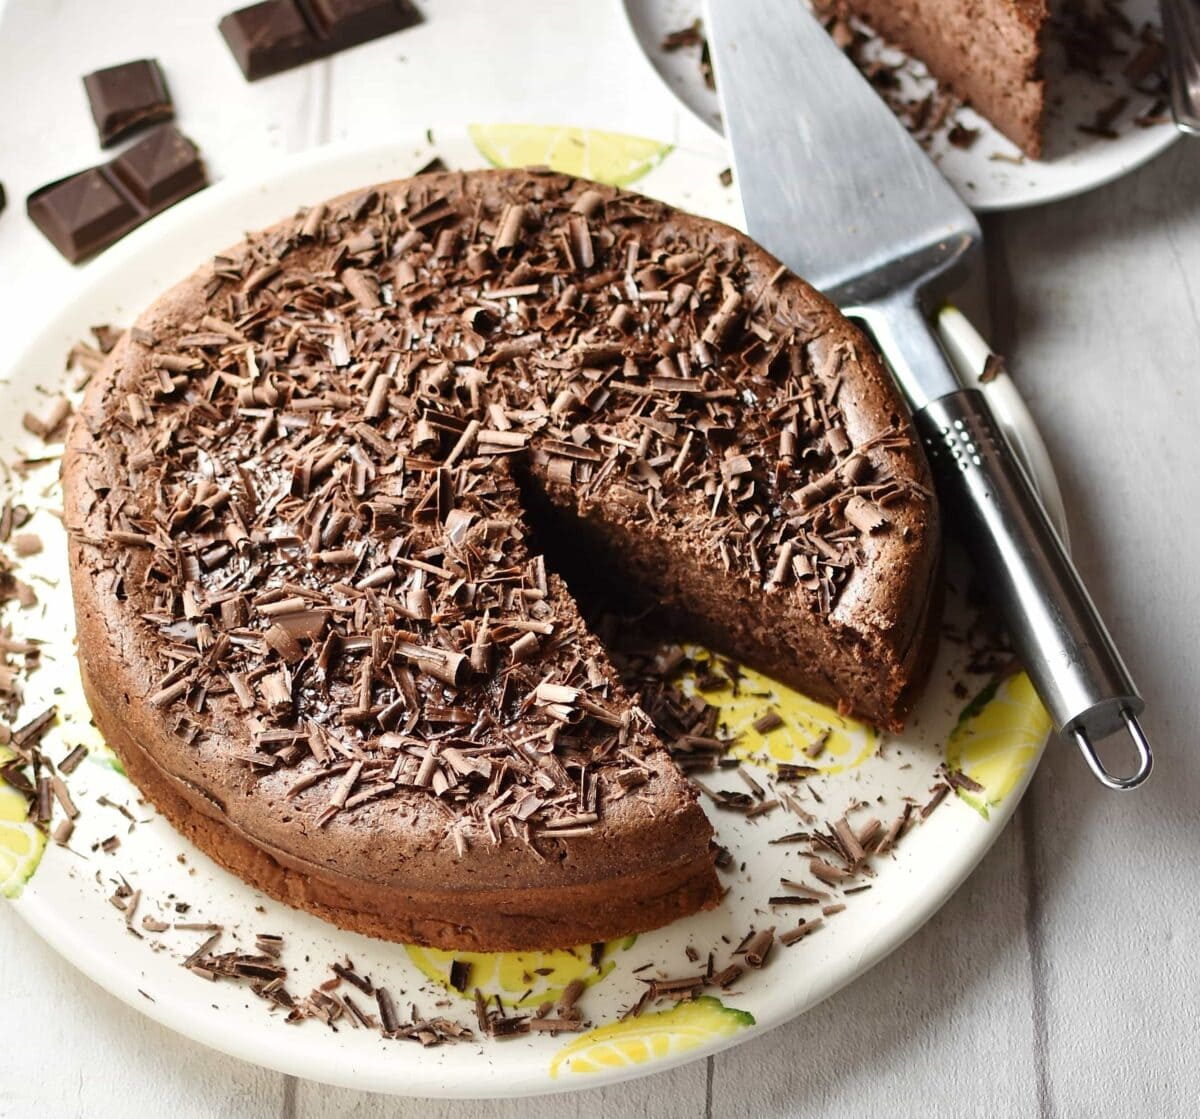 Chocolate ricotta cheesecake with chocolate shavings and metal spatula on top of white plate with yellow pattern, and chocolate pieces and partial view of cake in background.